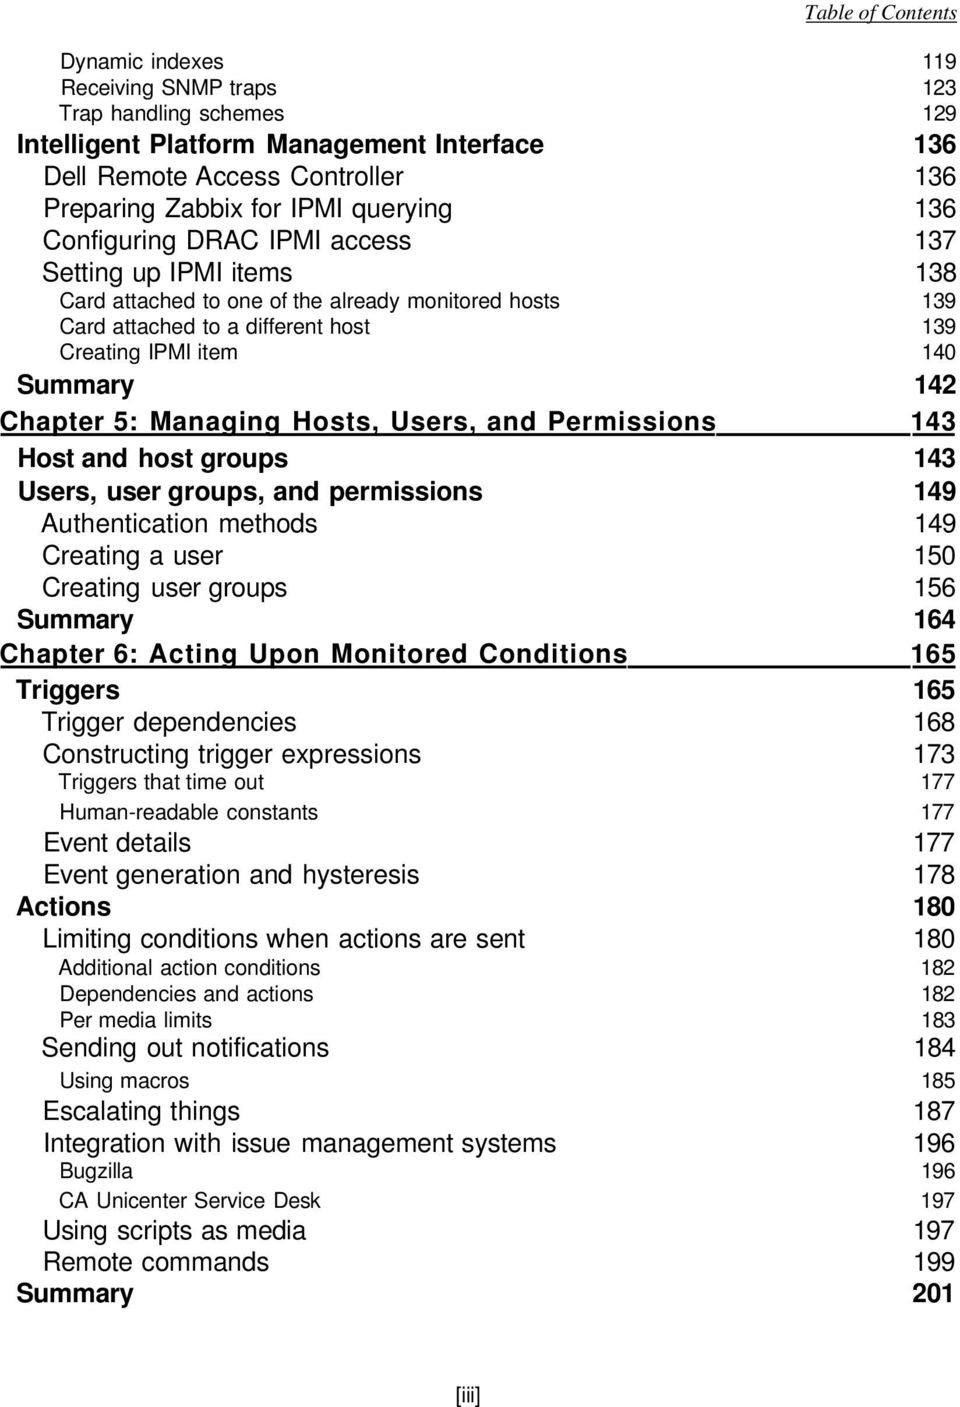 Managing Hosts, Users, and Permissions 143 Host and host groups 143 Users, user groups, and permissions 149 Authentication methods 149 Creating a user 150 Creating user groups 156 Summary 164 Chapter